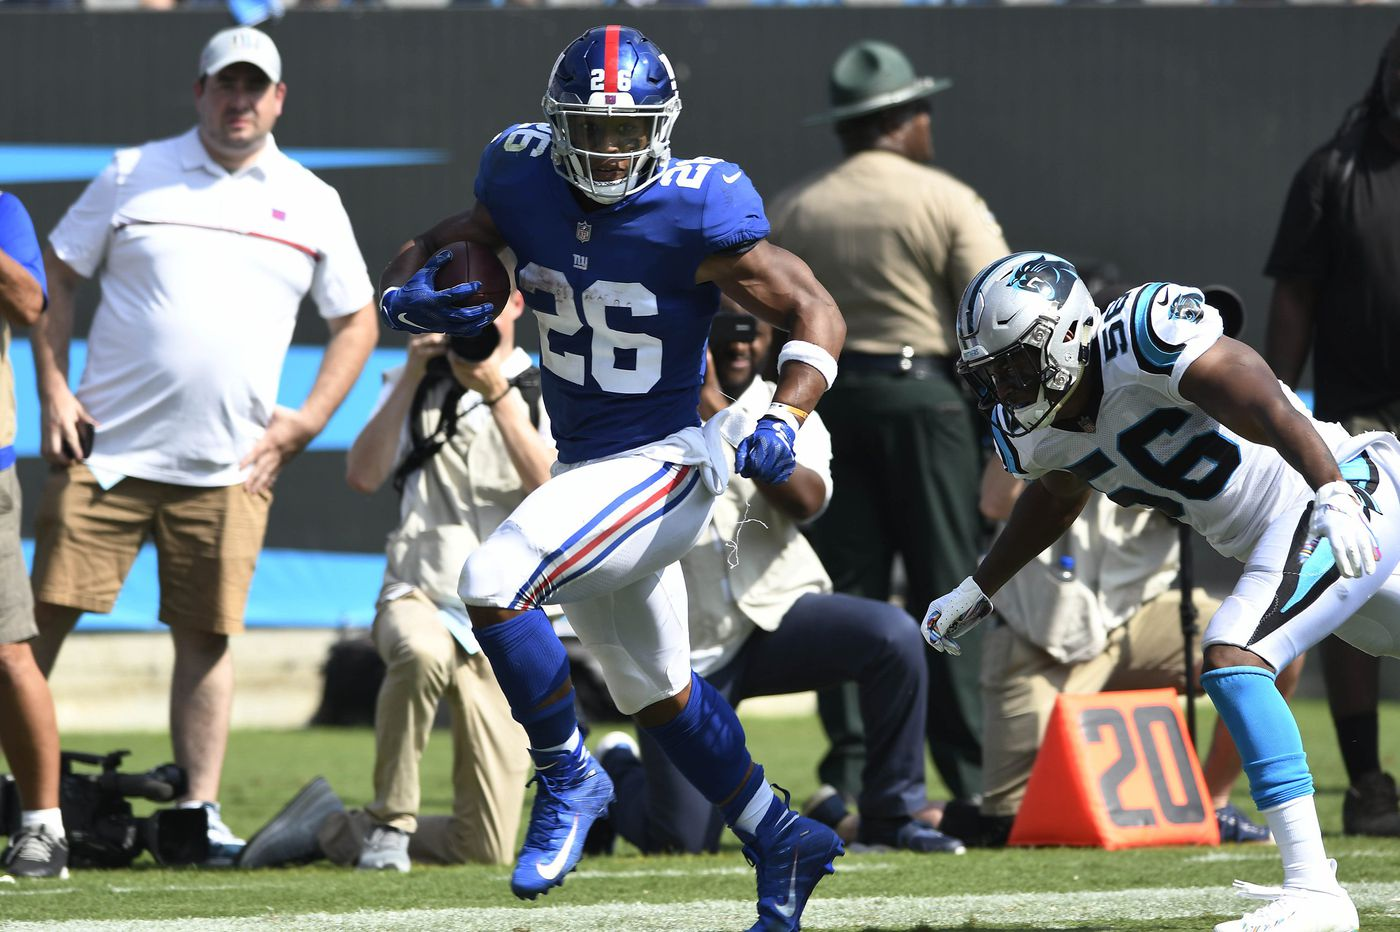 Eagles-Giants scouting report, prediction | Paul Domowitch